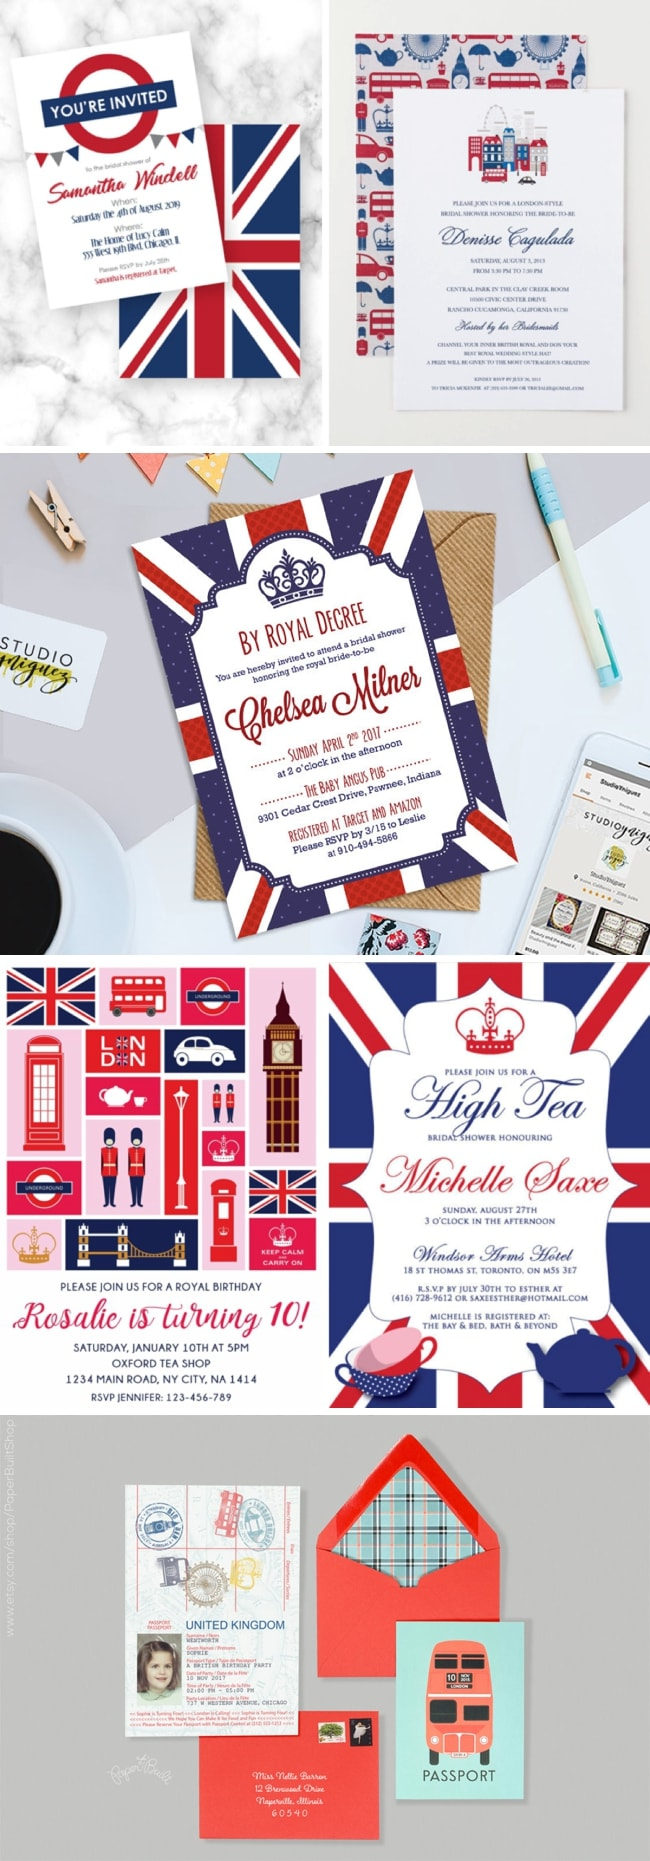 London Union Jack British Royal Wedding Themed Bridal Shower Invitations